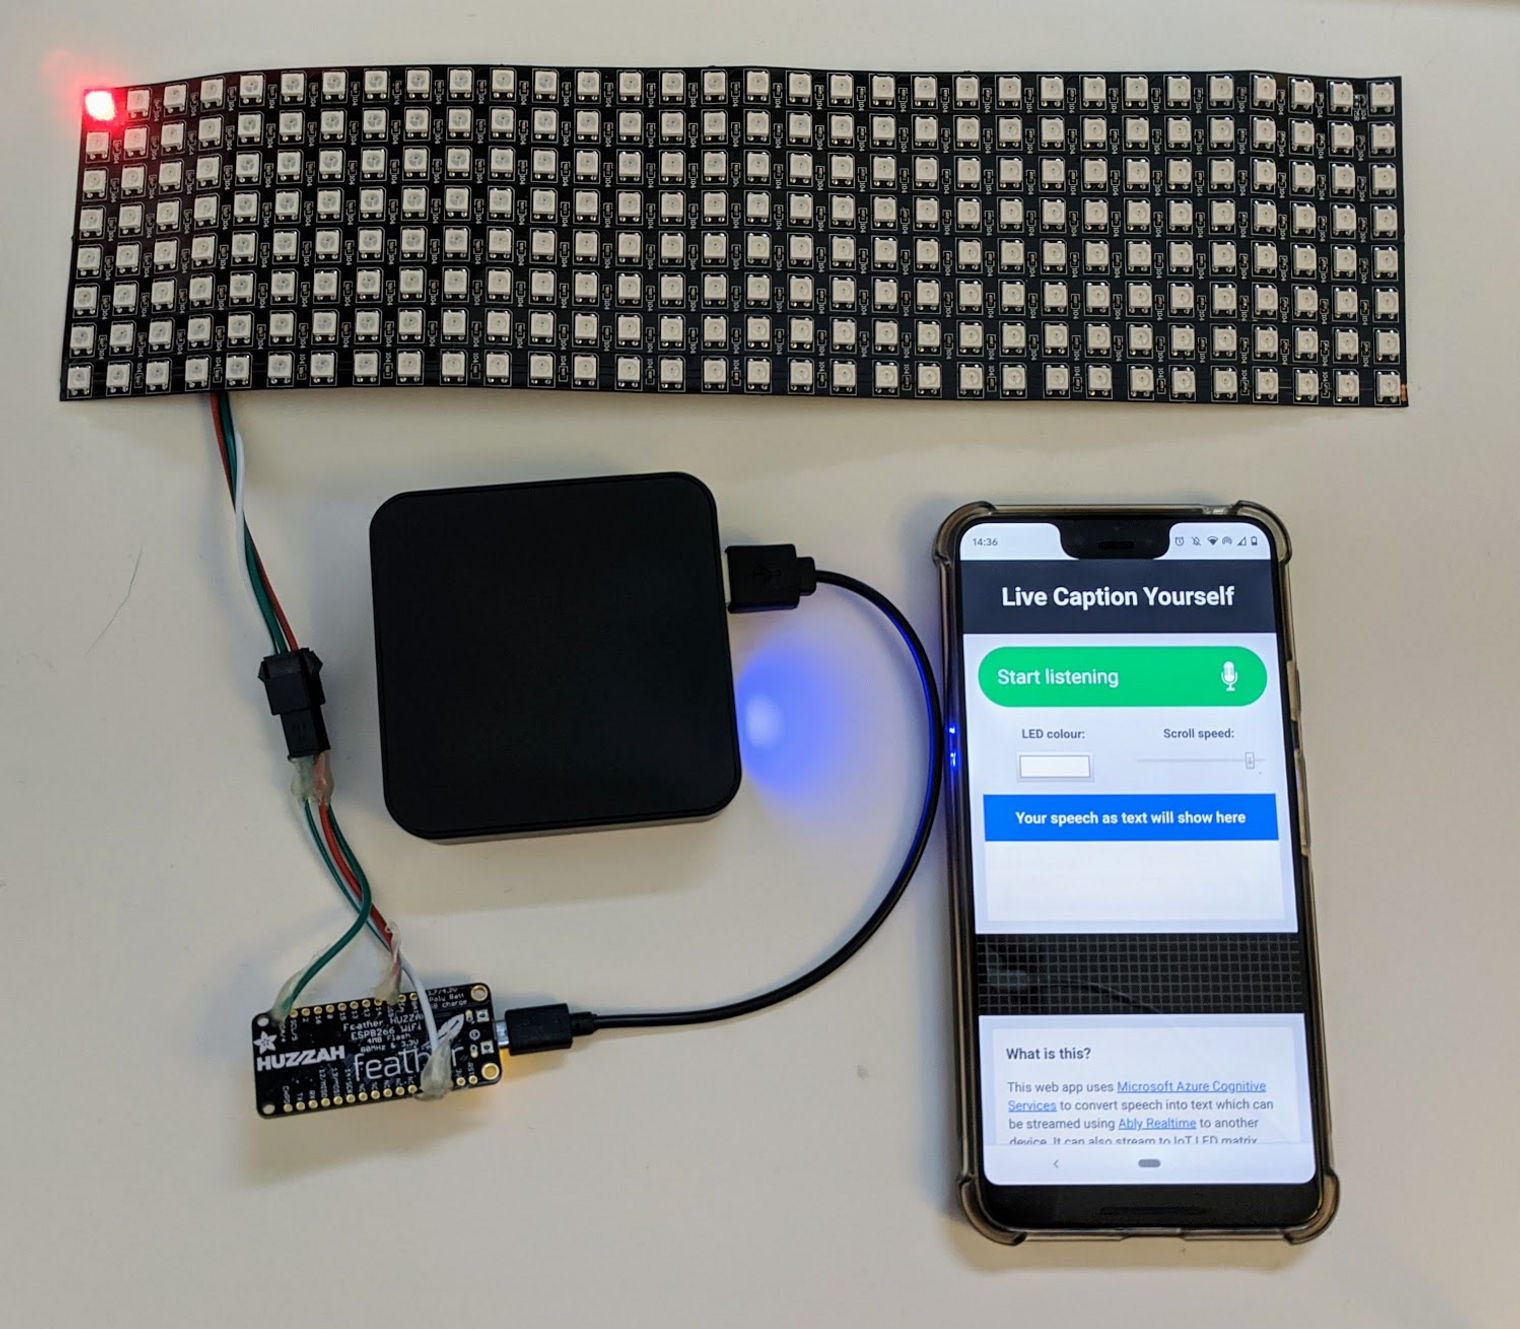 A flexible display attached to an Adafruit Feather Huzzah connected to a USB battery and a phone displaying the app